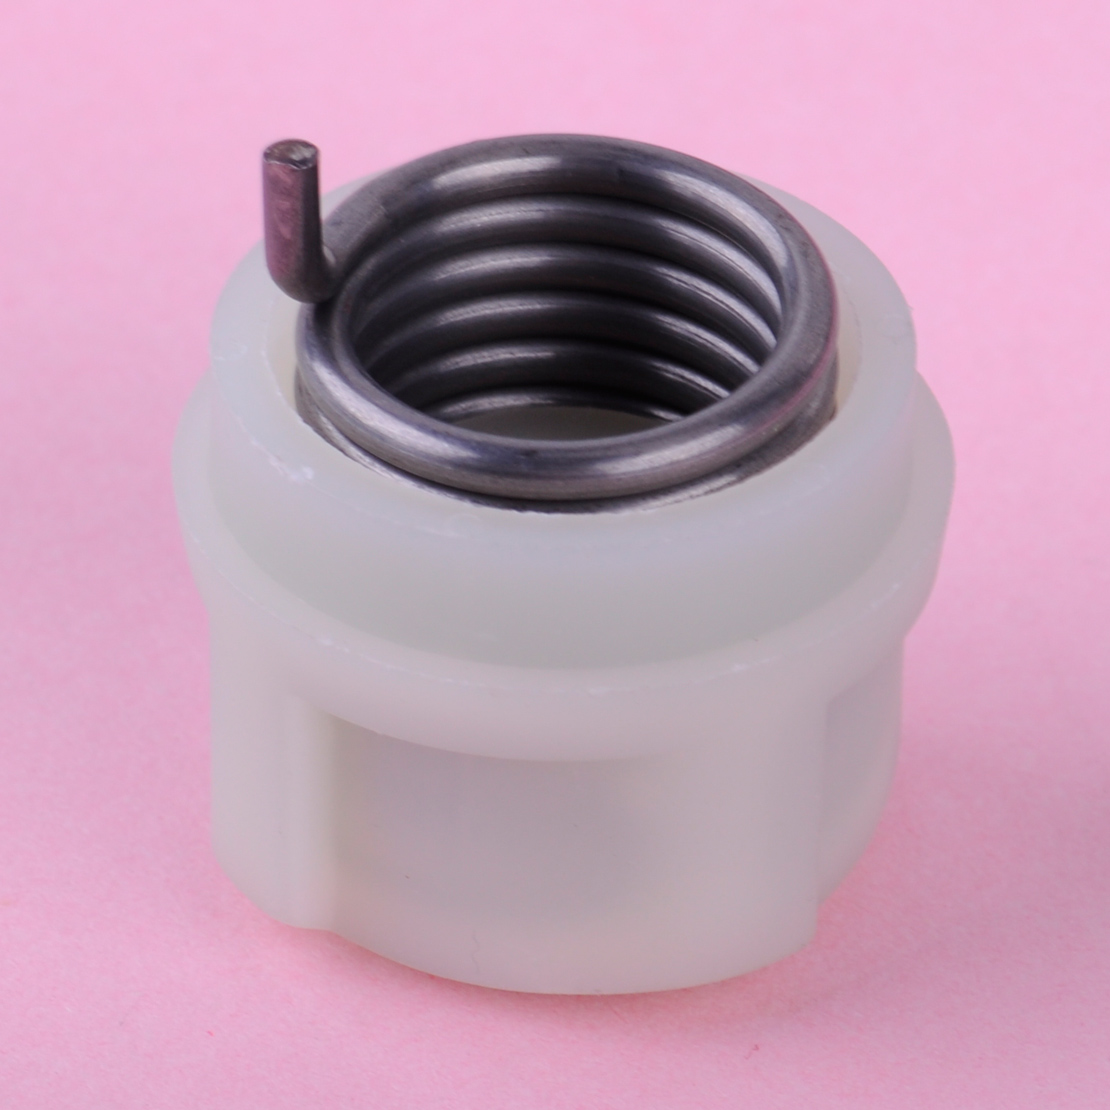 CITALL New Recoil Starter Spring Hub Replacement Fit For Husqvarna 136 137 141 142 Chainsaws 530021180